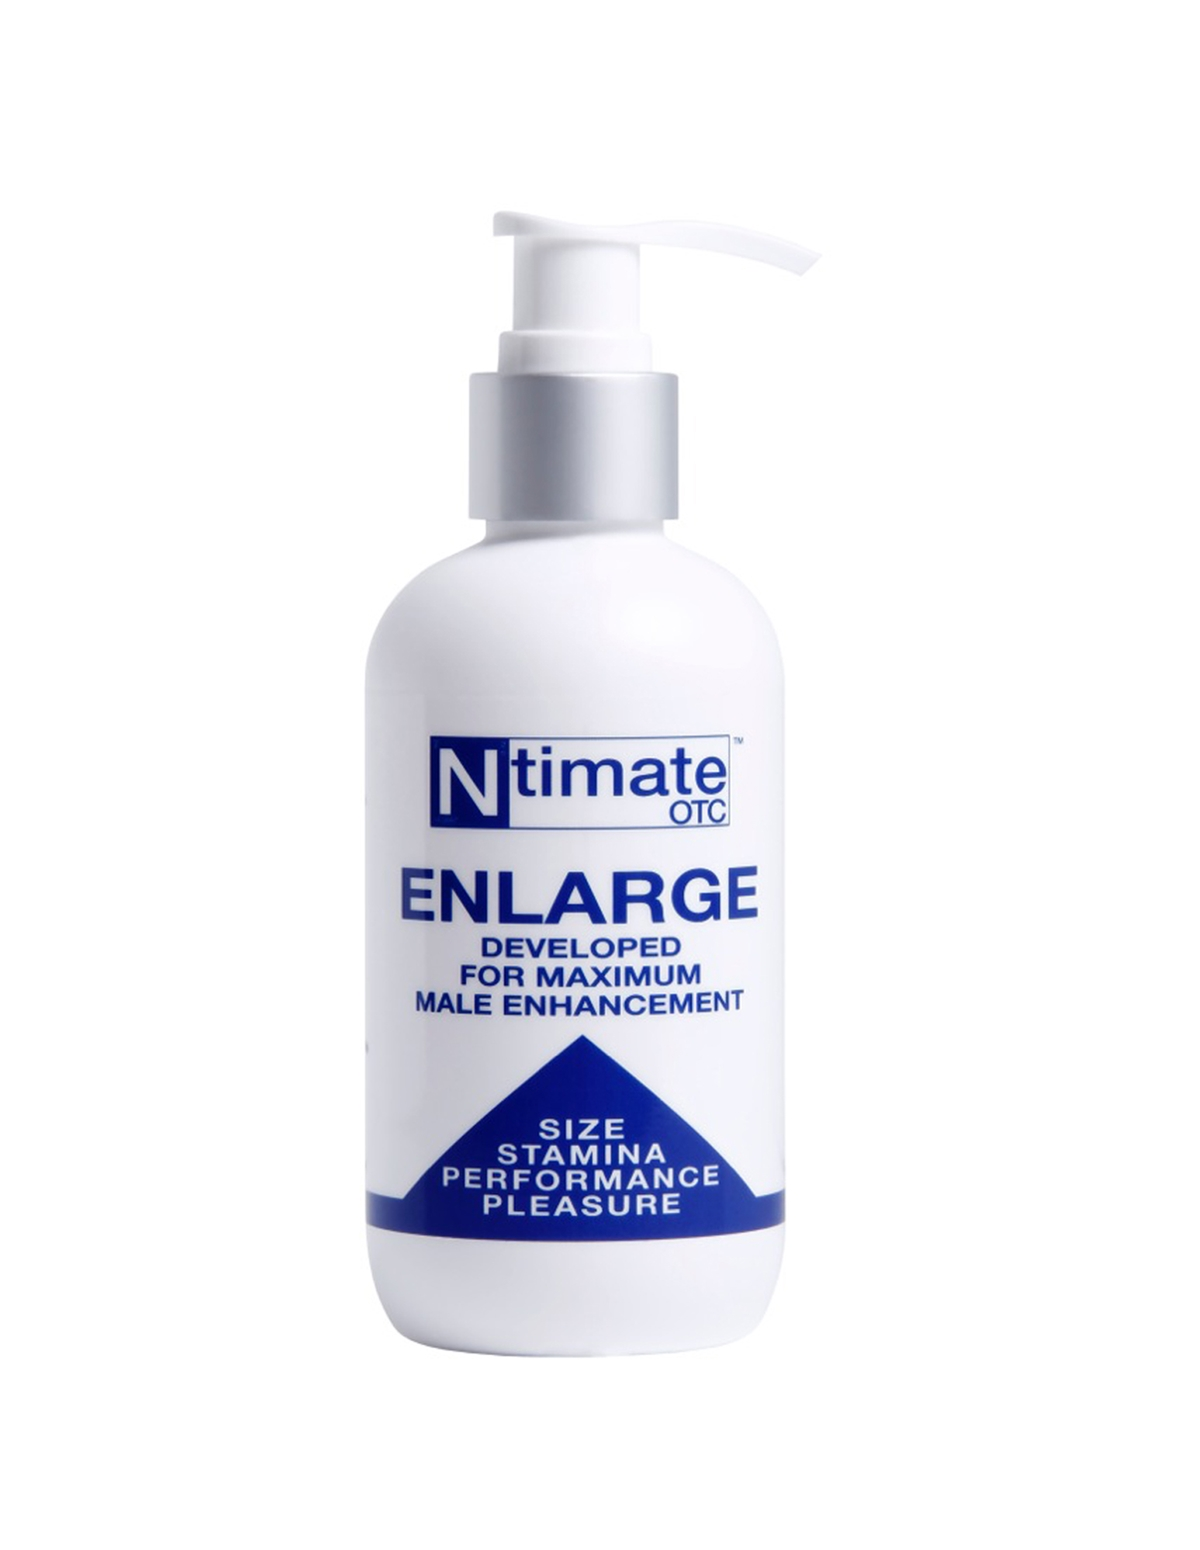 Ntimate Otc Enlarge Enhancement Cream